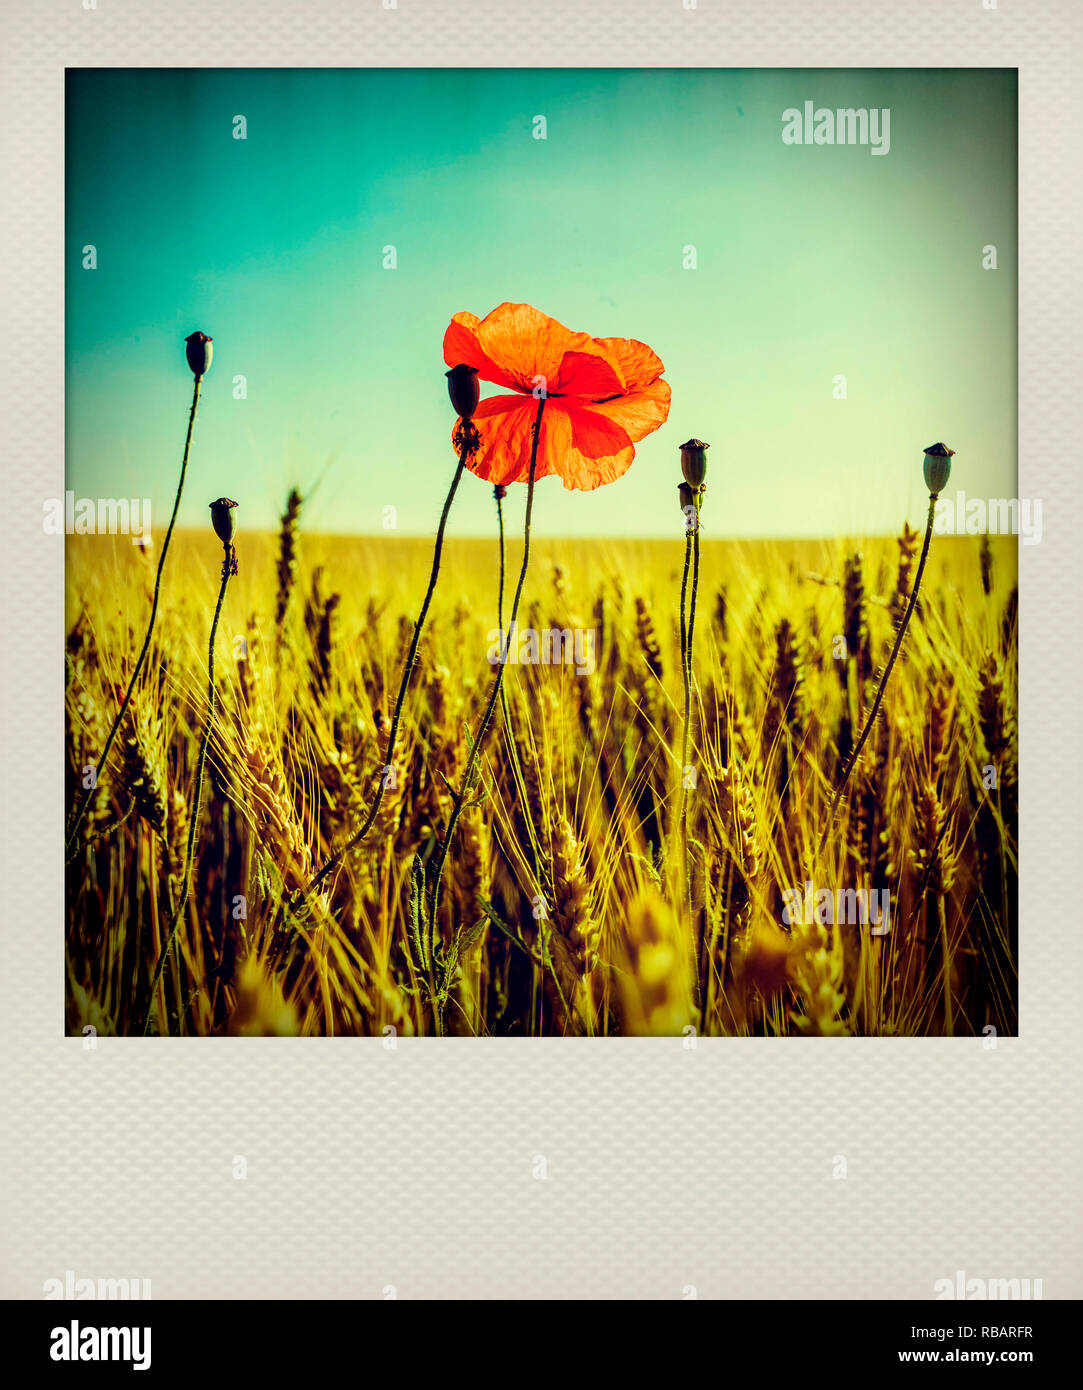 Polaroid effect of poppy in a wheat field, France, Europe - Stock Image